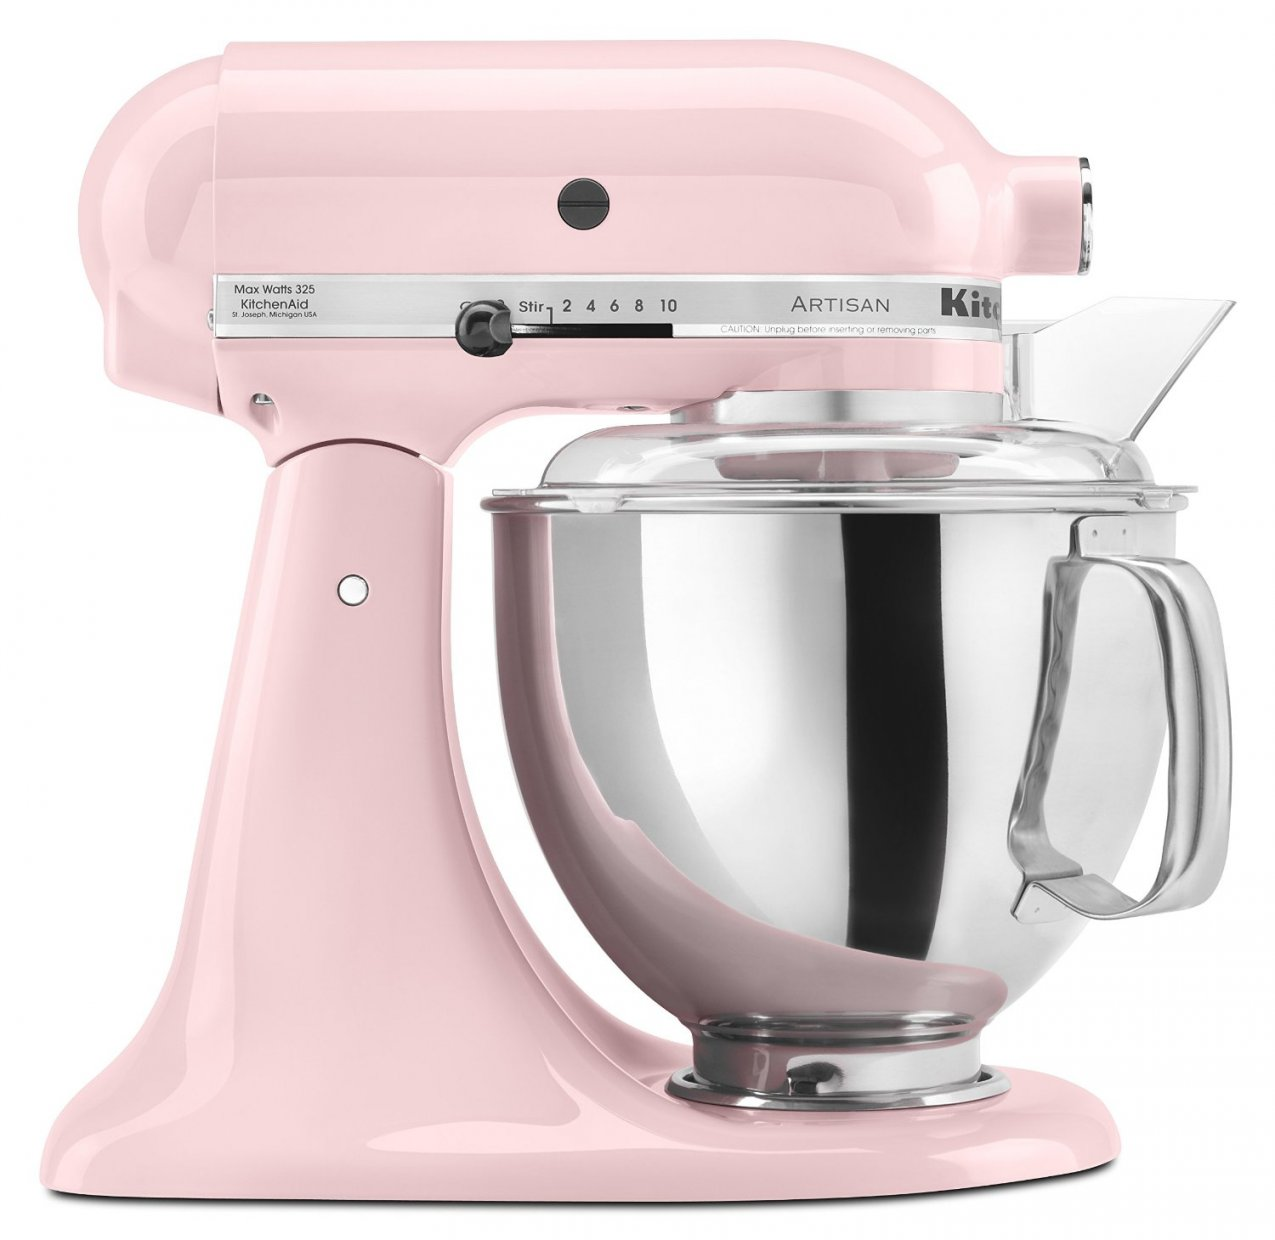 Cool Kitchen Stuff Pink Kitchen Accessories